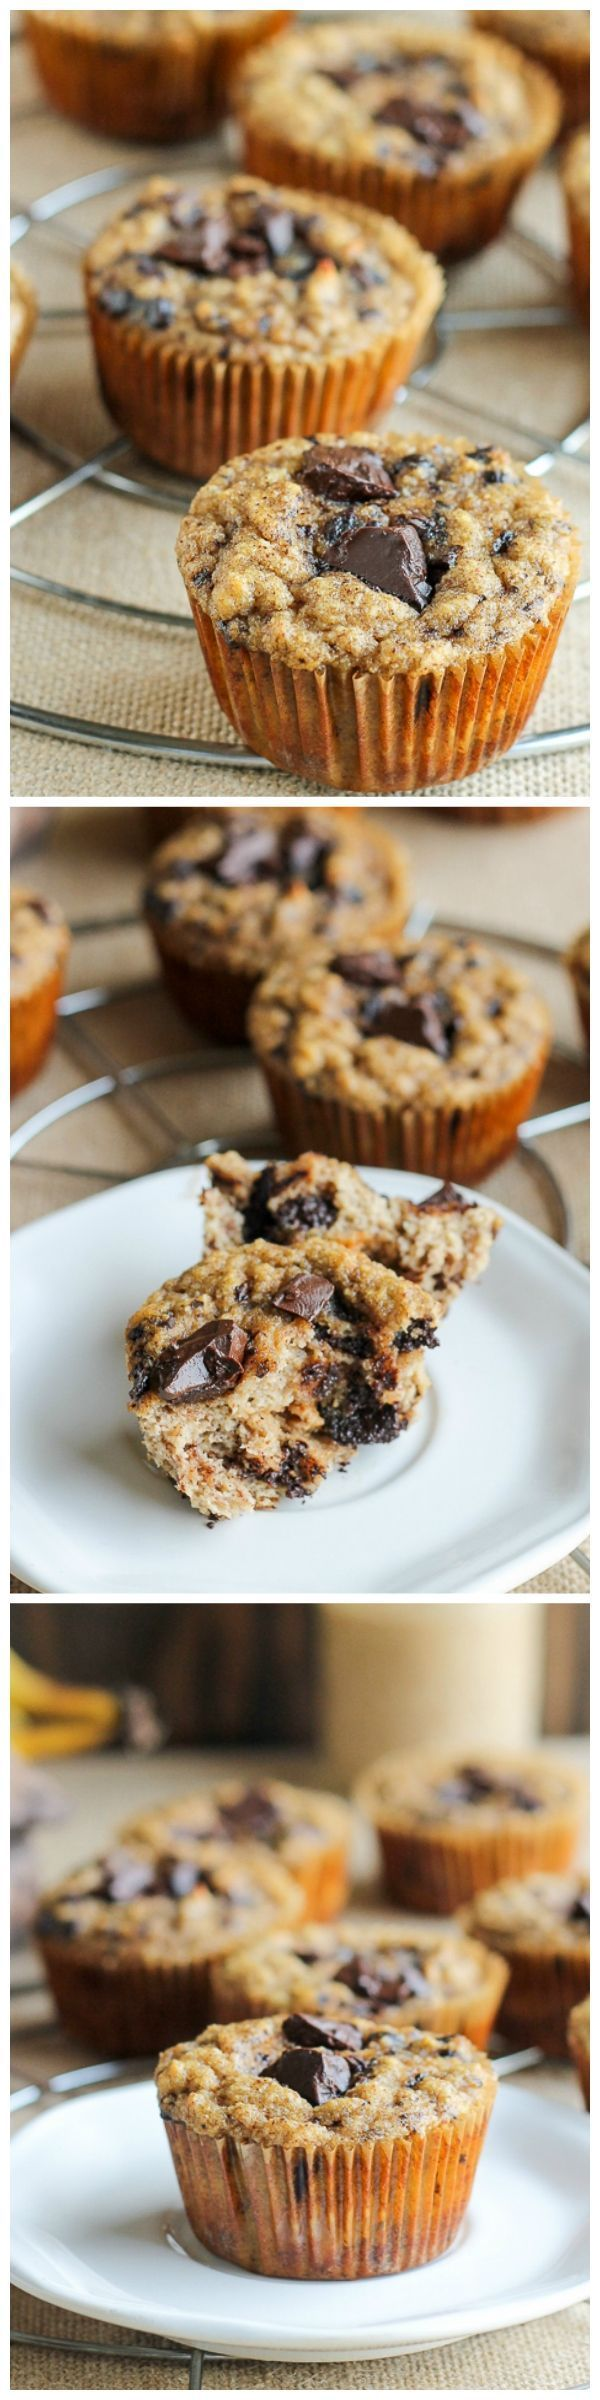 These Paleo Almond Butter Chocolate Chip Banana Muffins taste just like your mom's banana muffins. They're sweetened with only bananas!